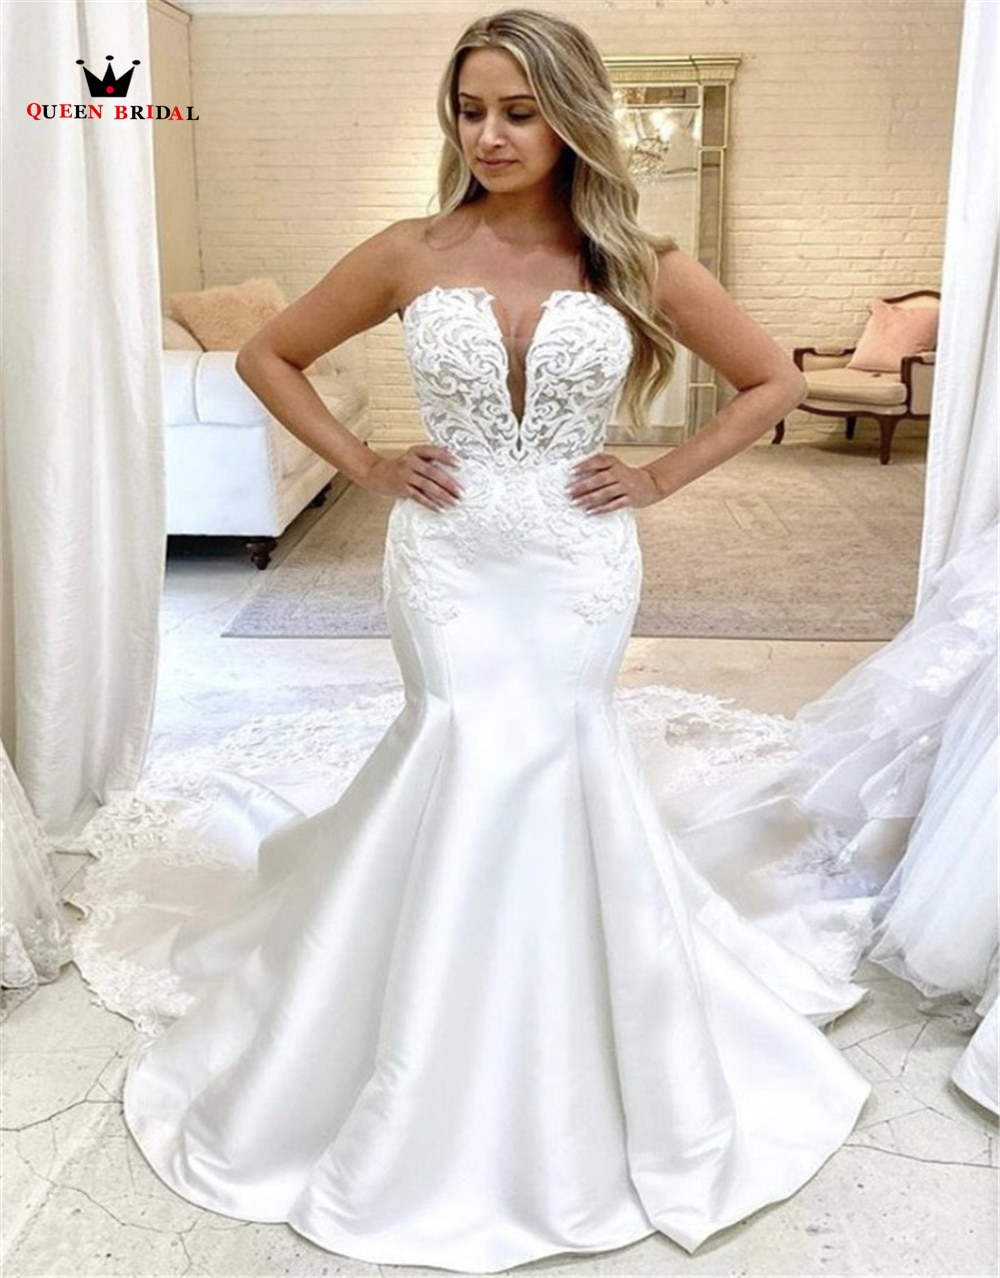 sexy-wedding-dresses-mermaid-strapless-v-neck-satin-lace-appliques-2021-new-design-vintage-simple-bride-gowns-custom-made-sd02